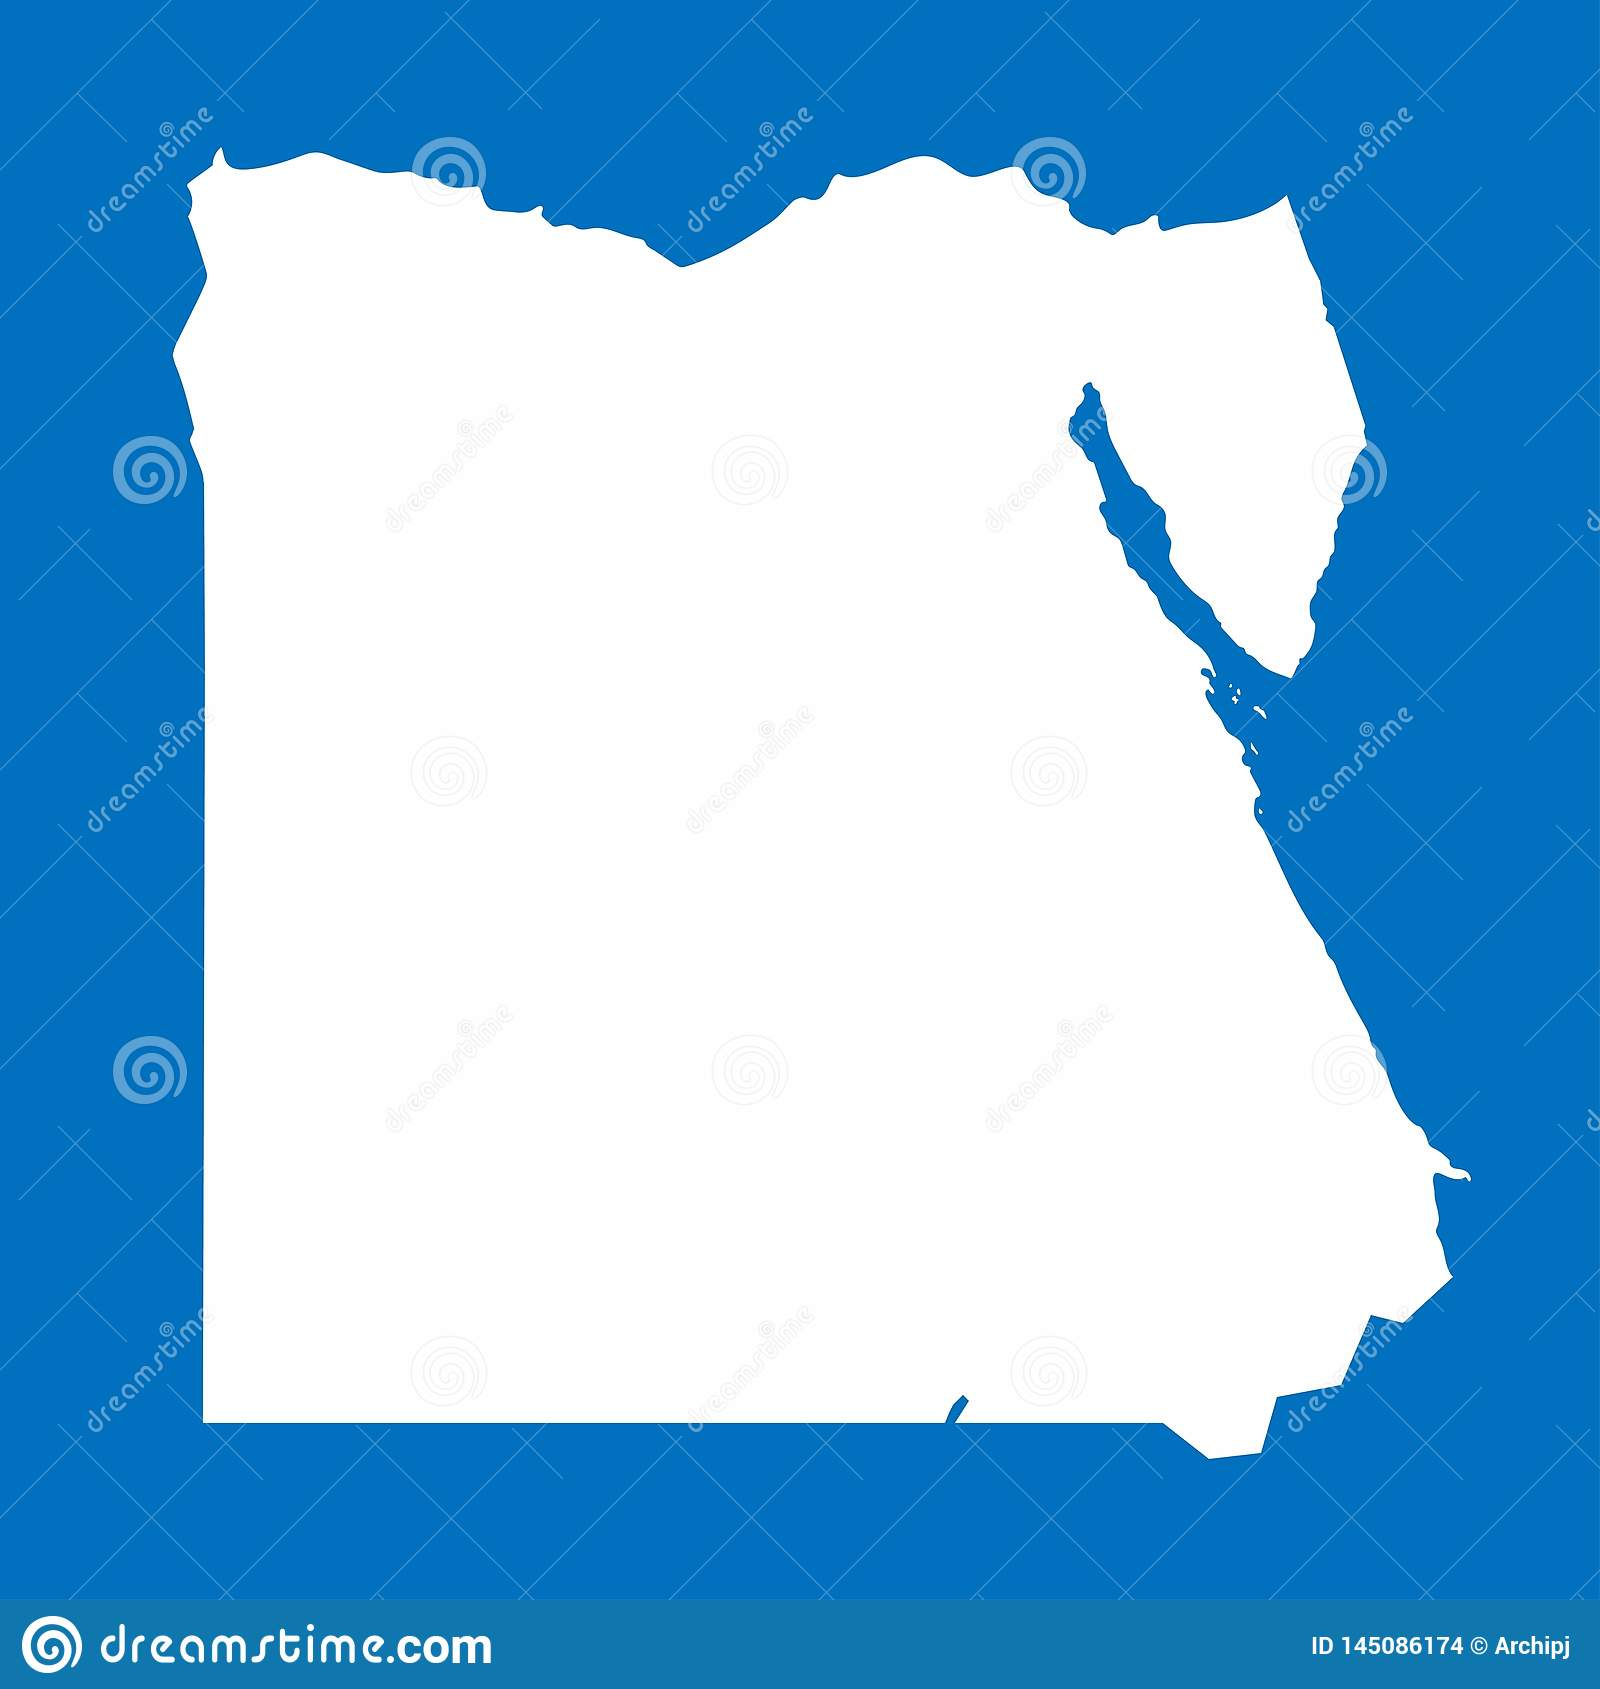 Egypt map on blue background, Vector Illustration